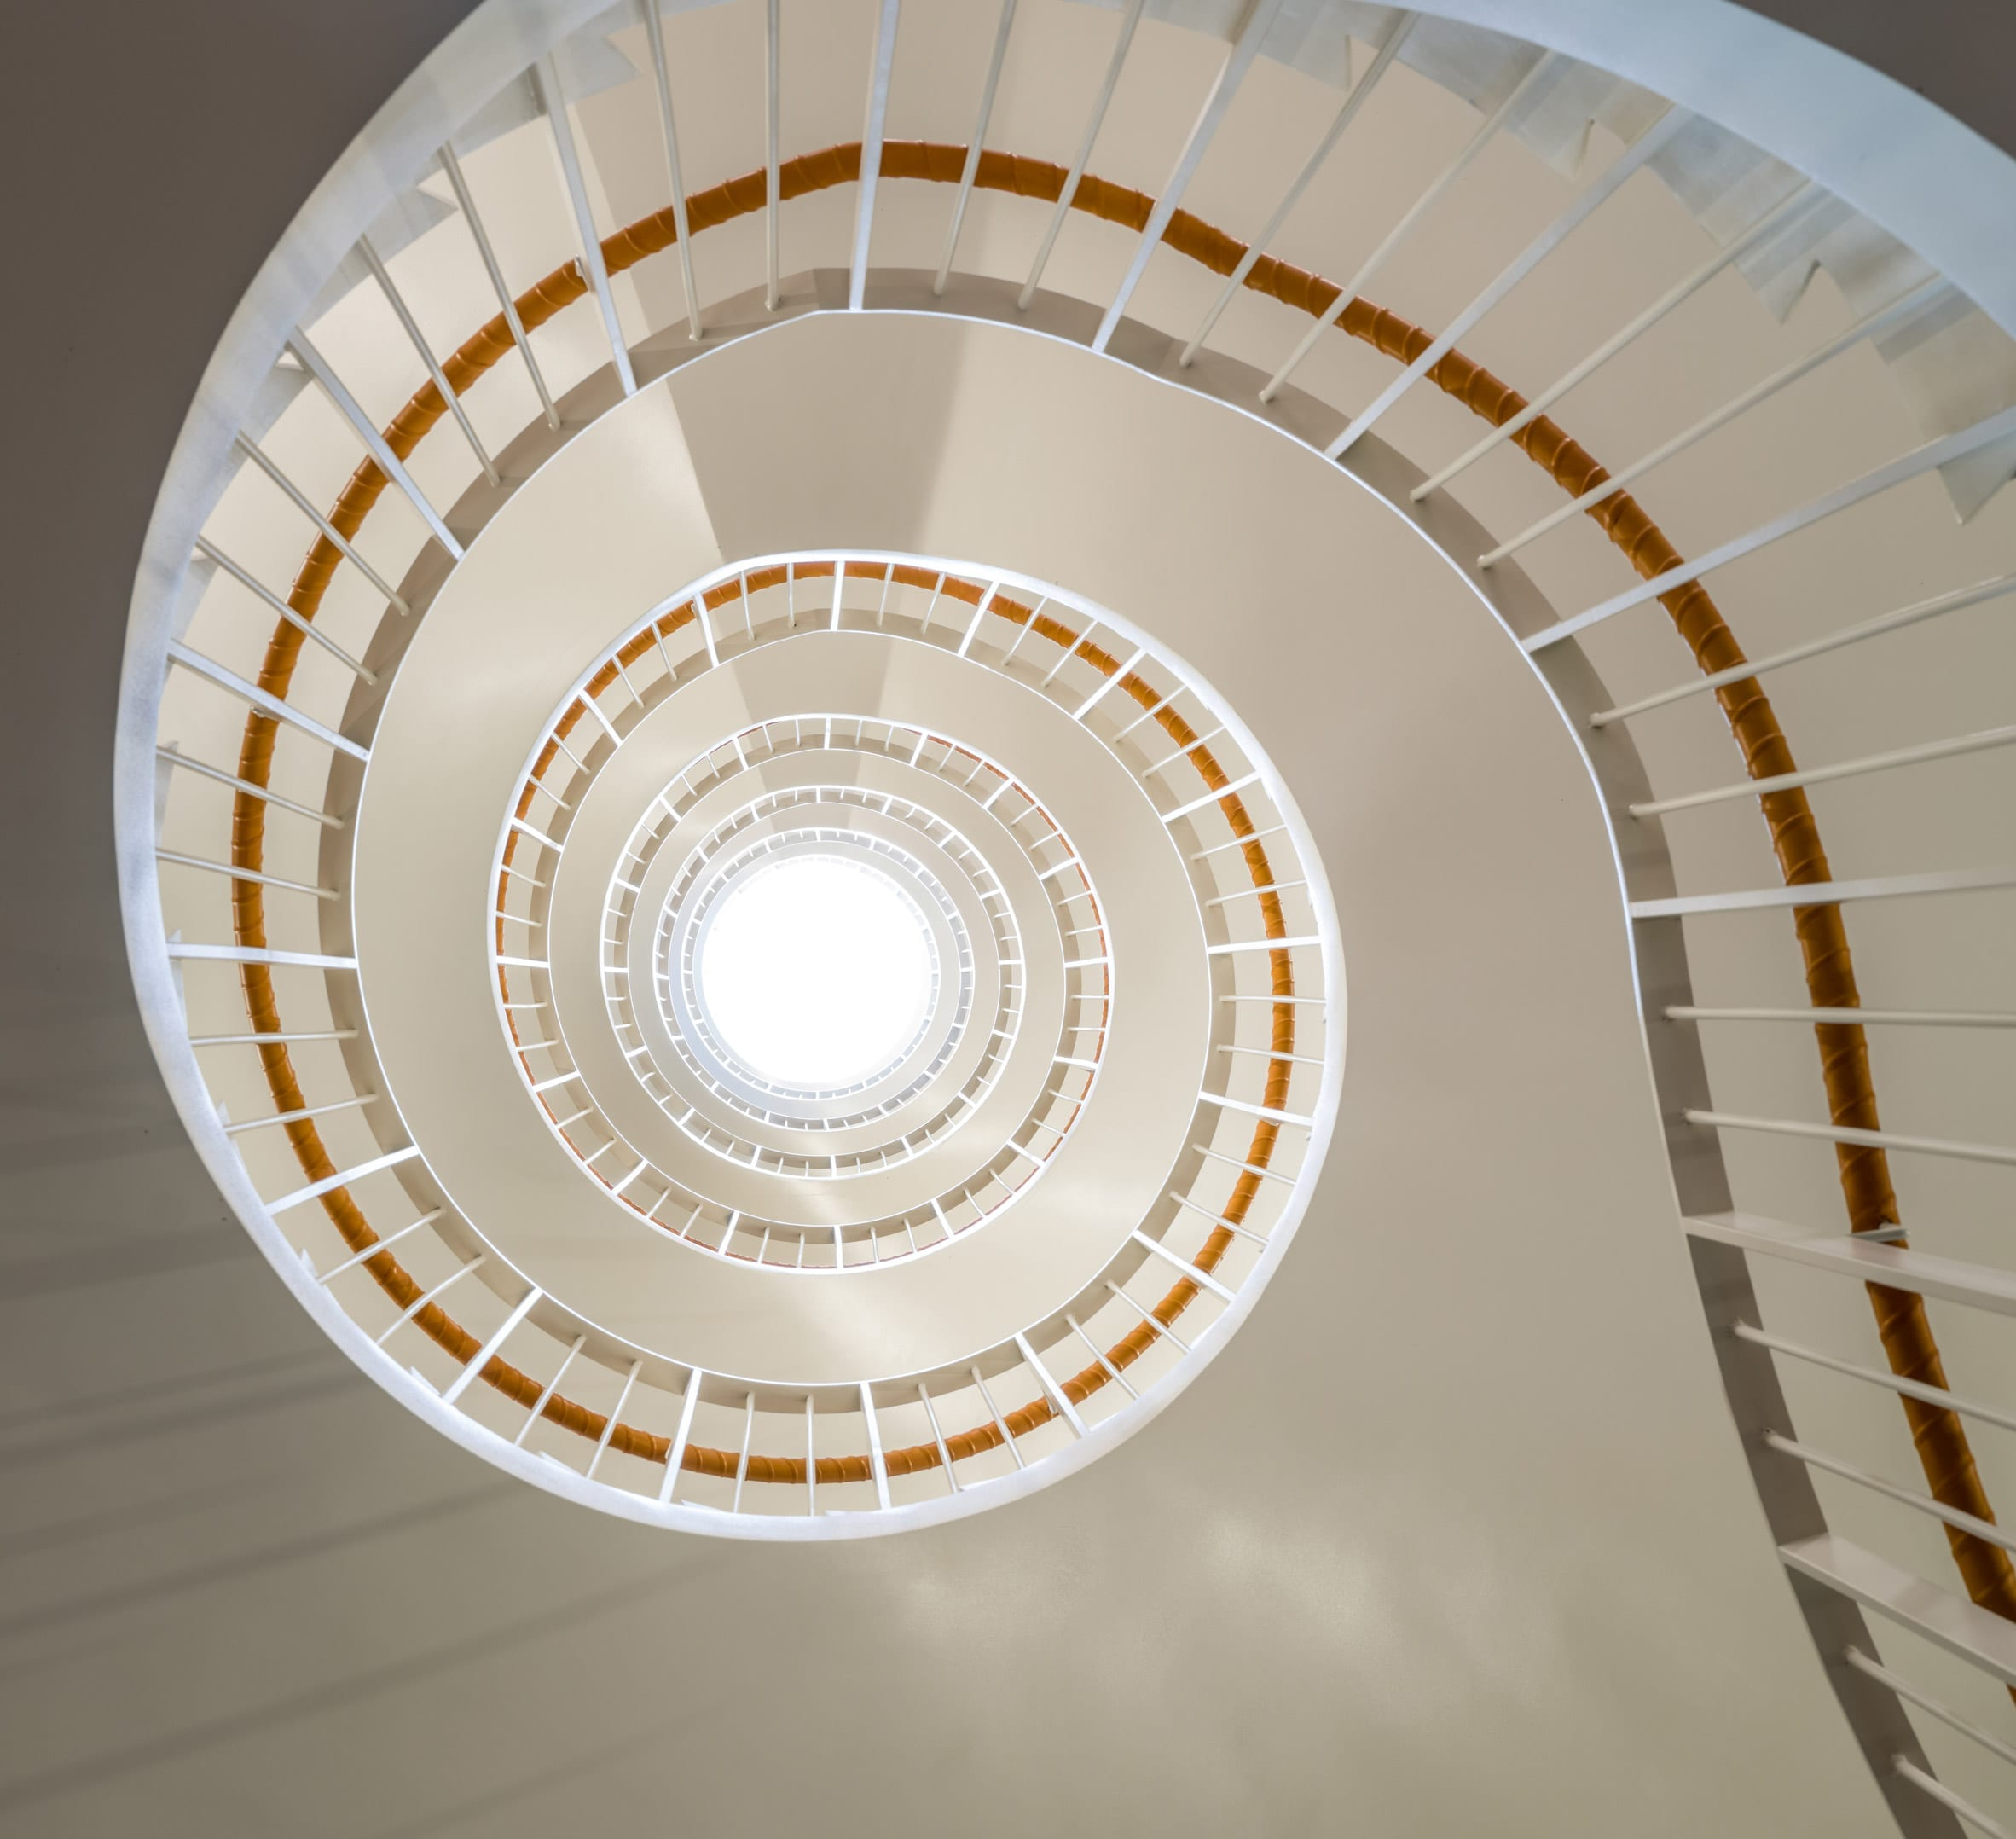 The stairwell has a glass roof at the Nybrogatan 17 office block